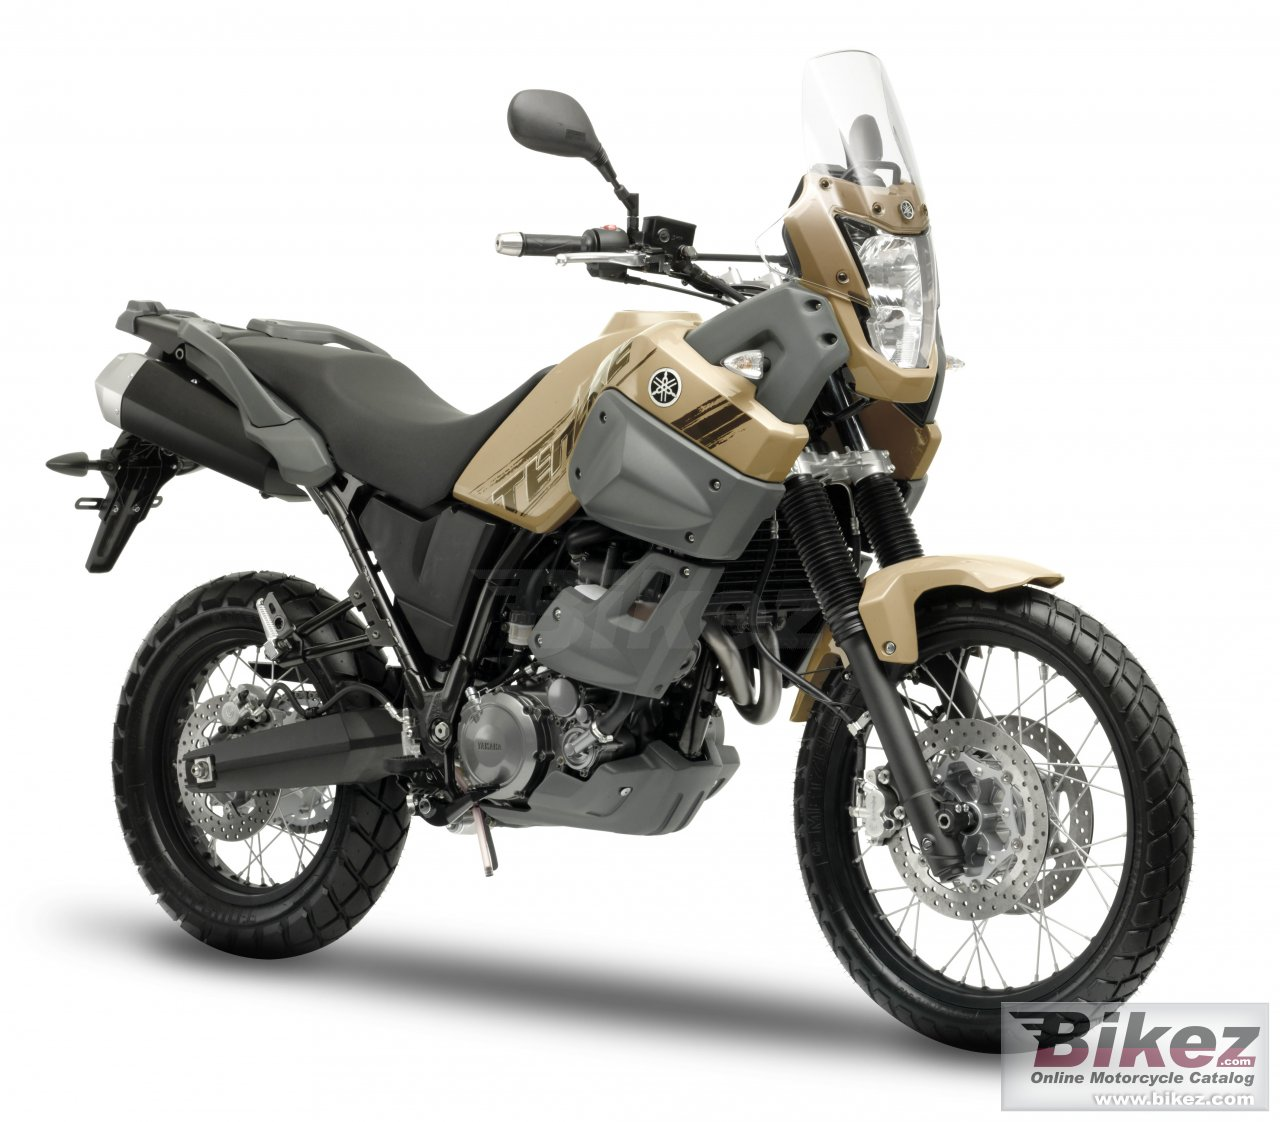 Big Yamaha xt660z tenere picture and wallpaper from Bikez.com